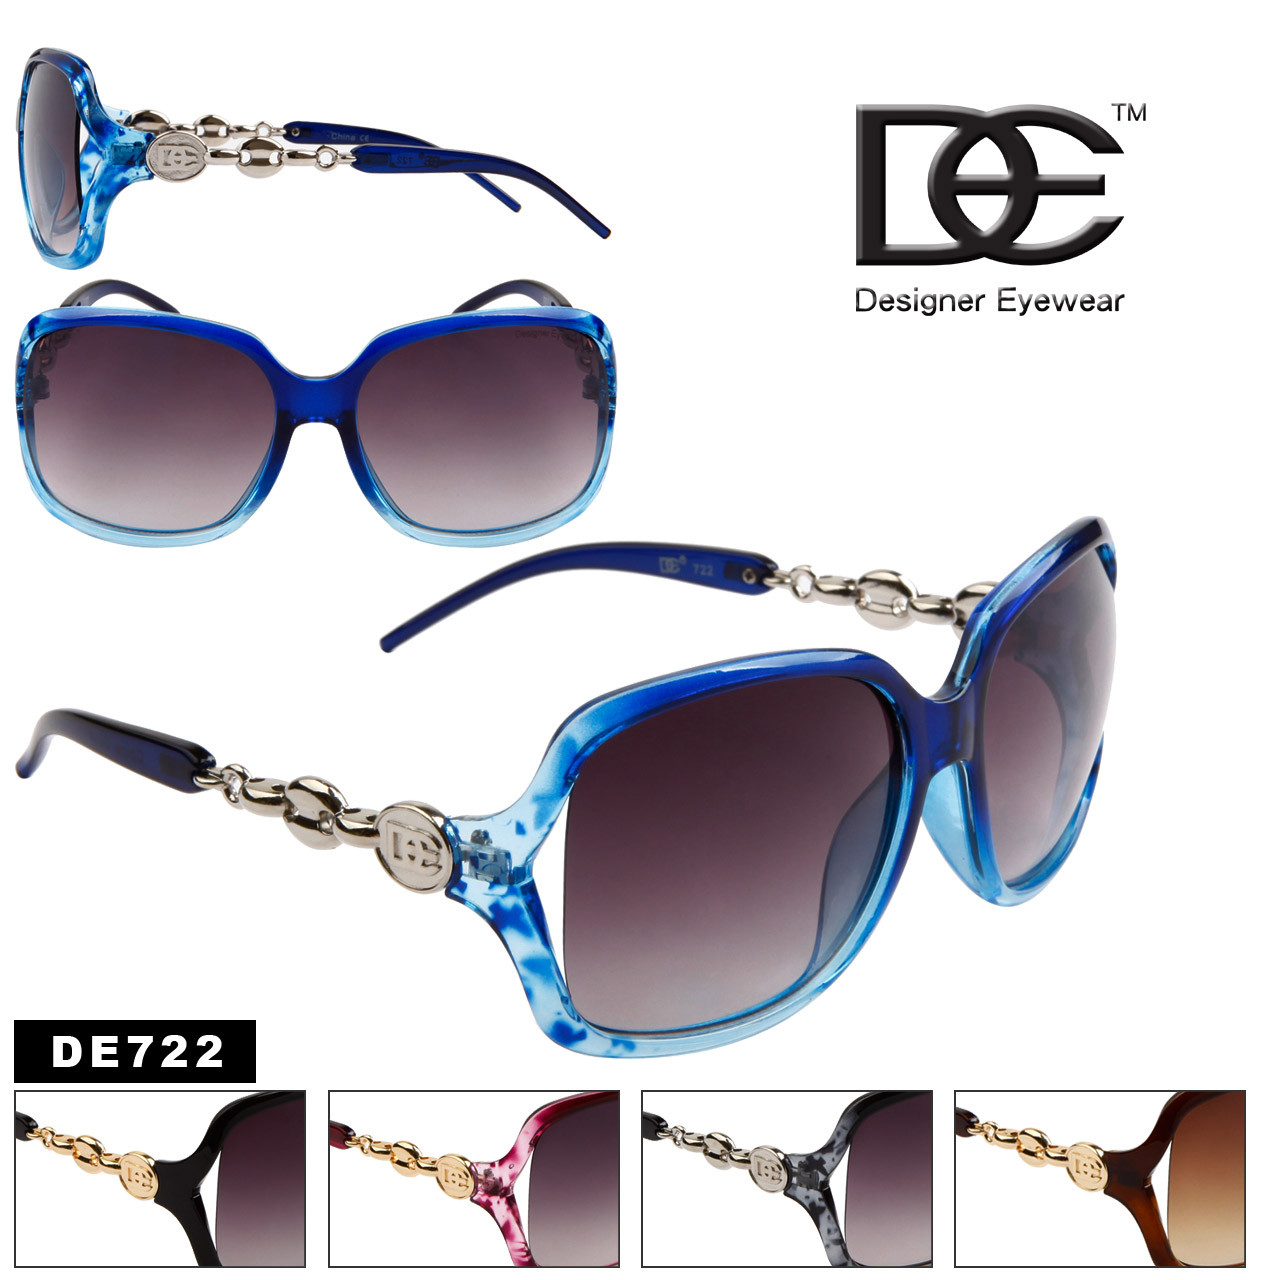 147201cde5 Wholesale Designer Sunglasses by the Dozen - Style   DE722 (12 pcs.)